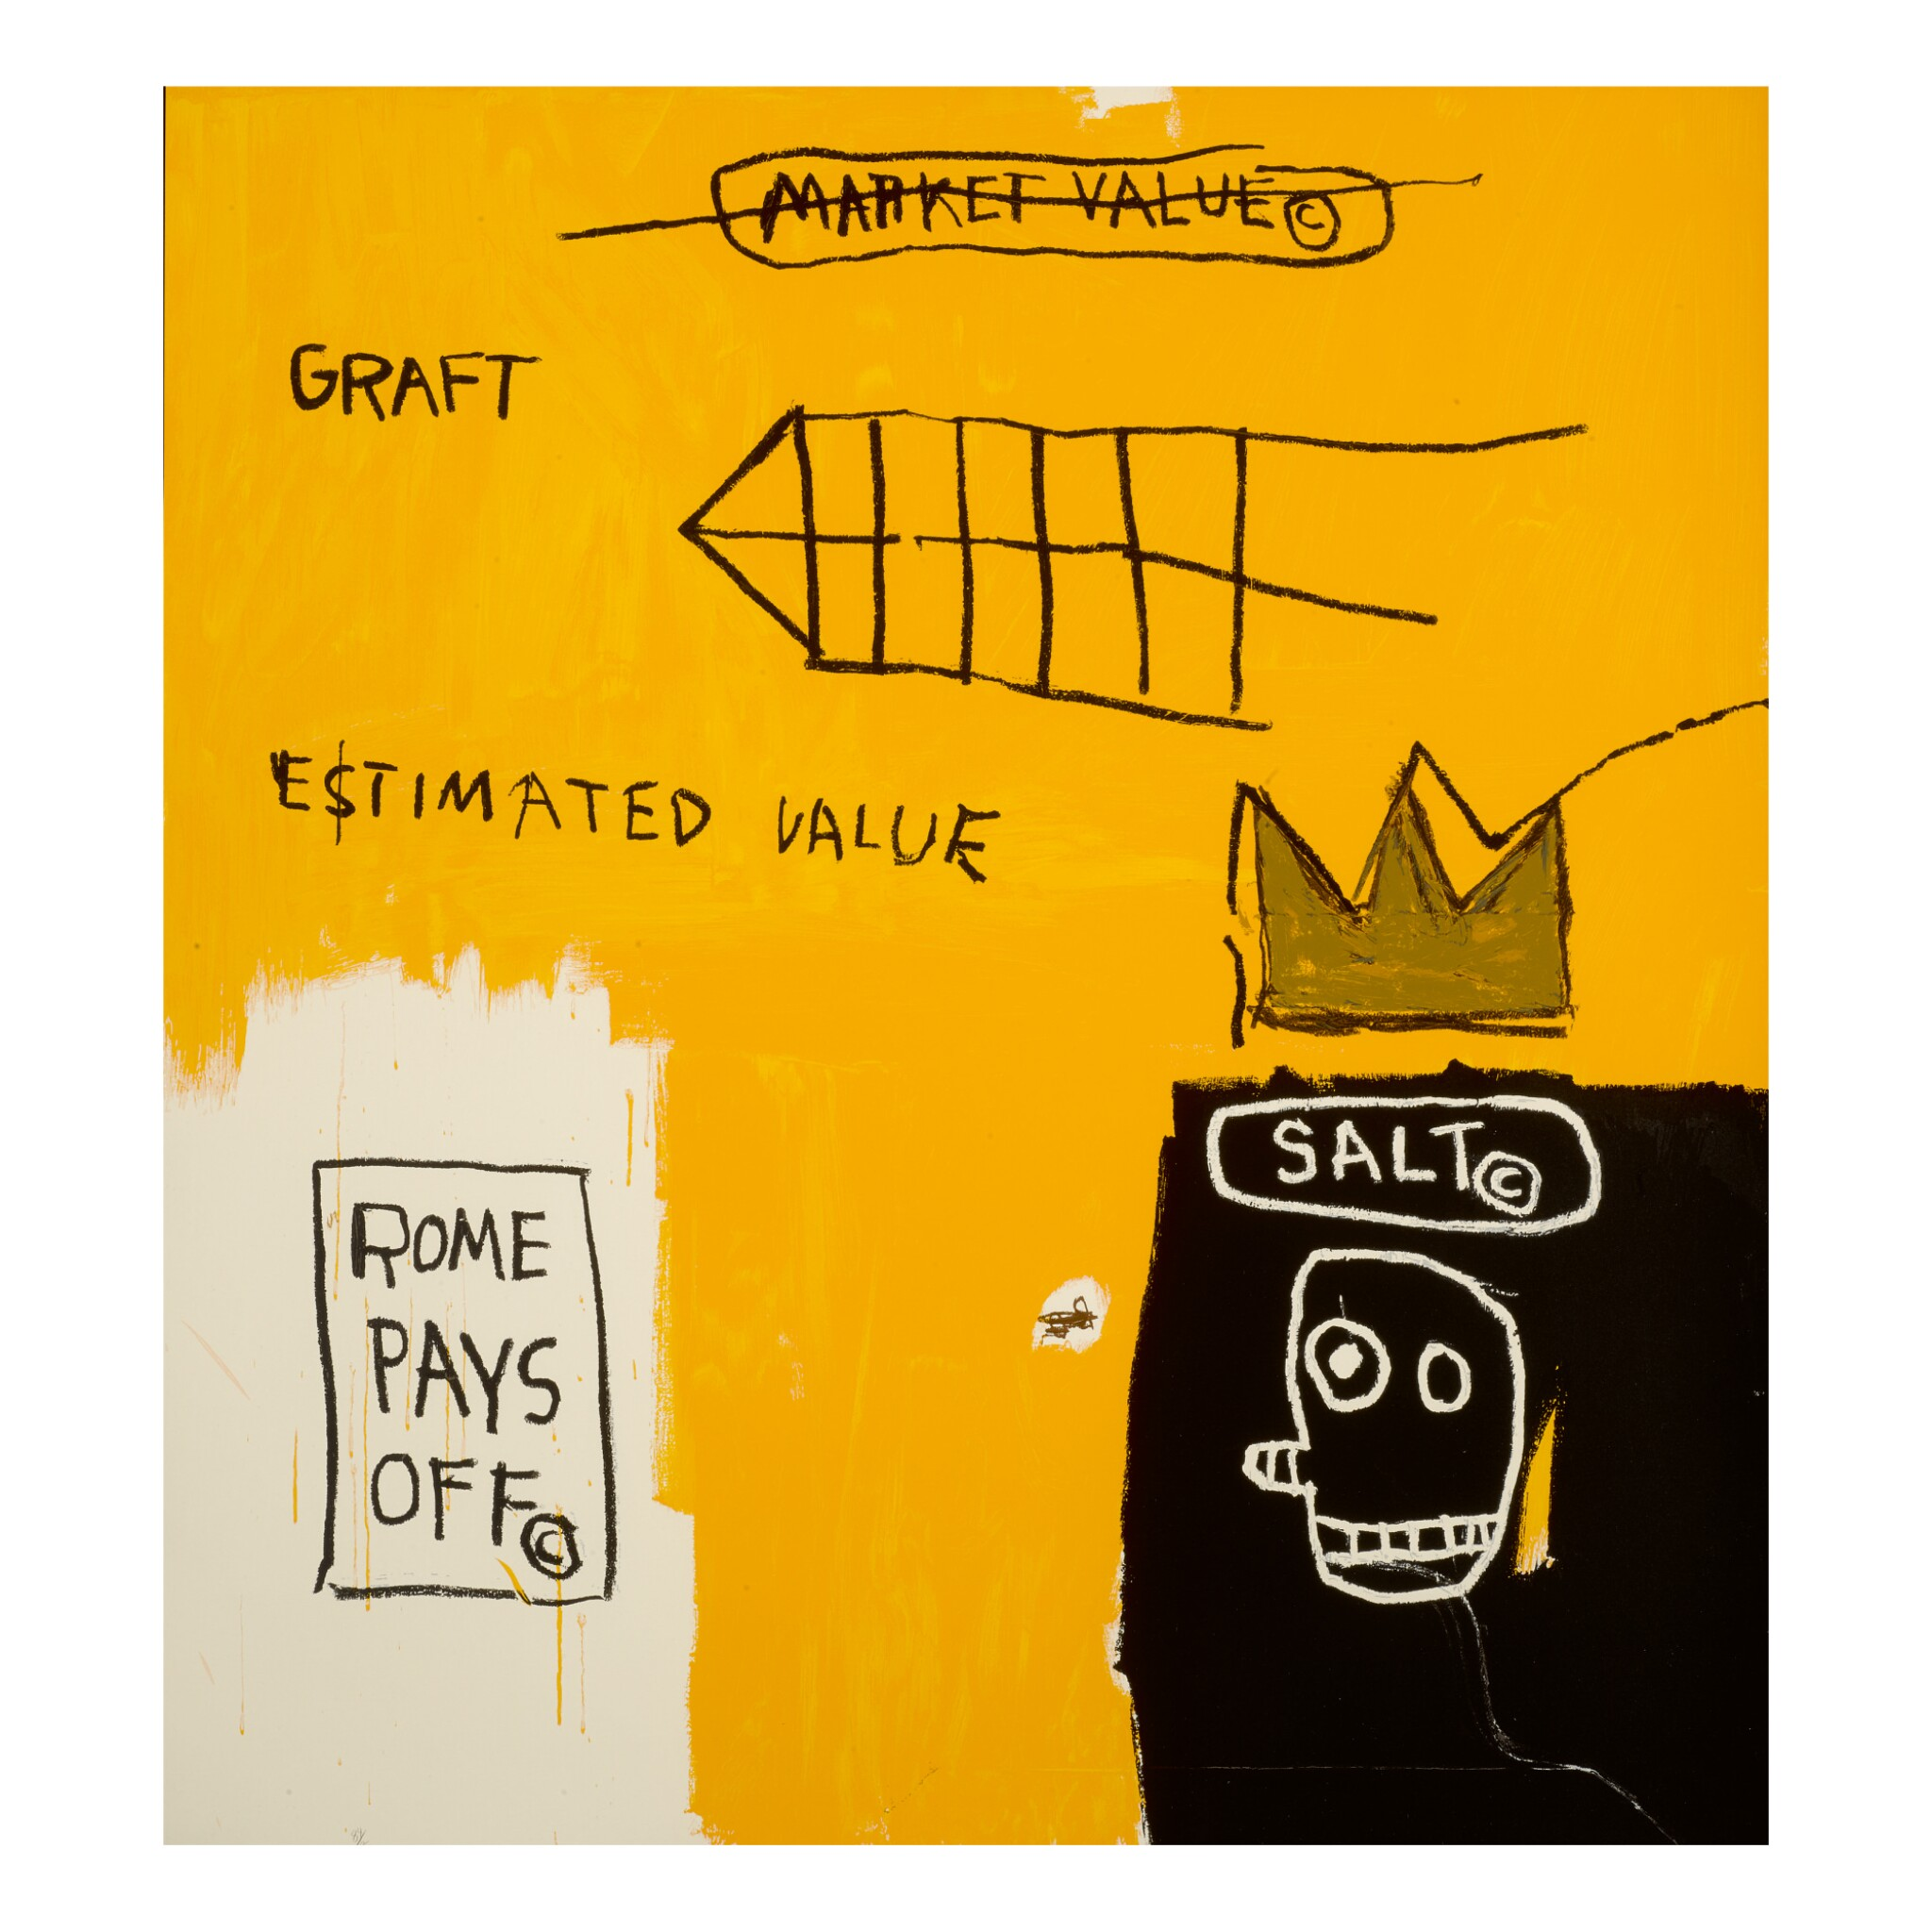 AFTER JEAN-MICHEL BASQUIAT | ROME PAYS OFF